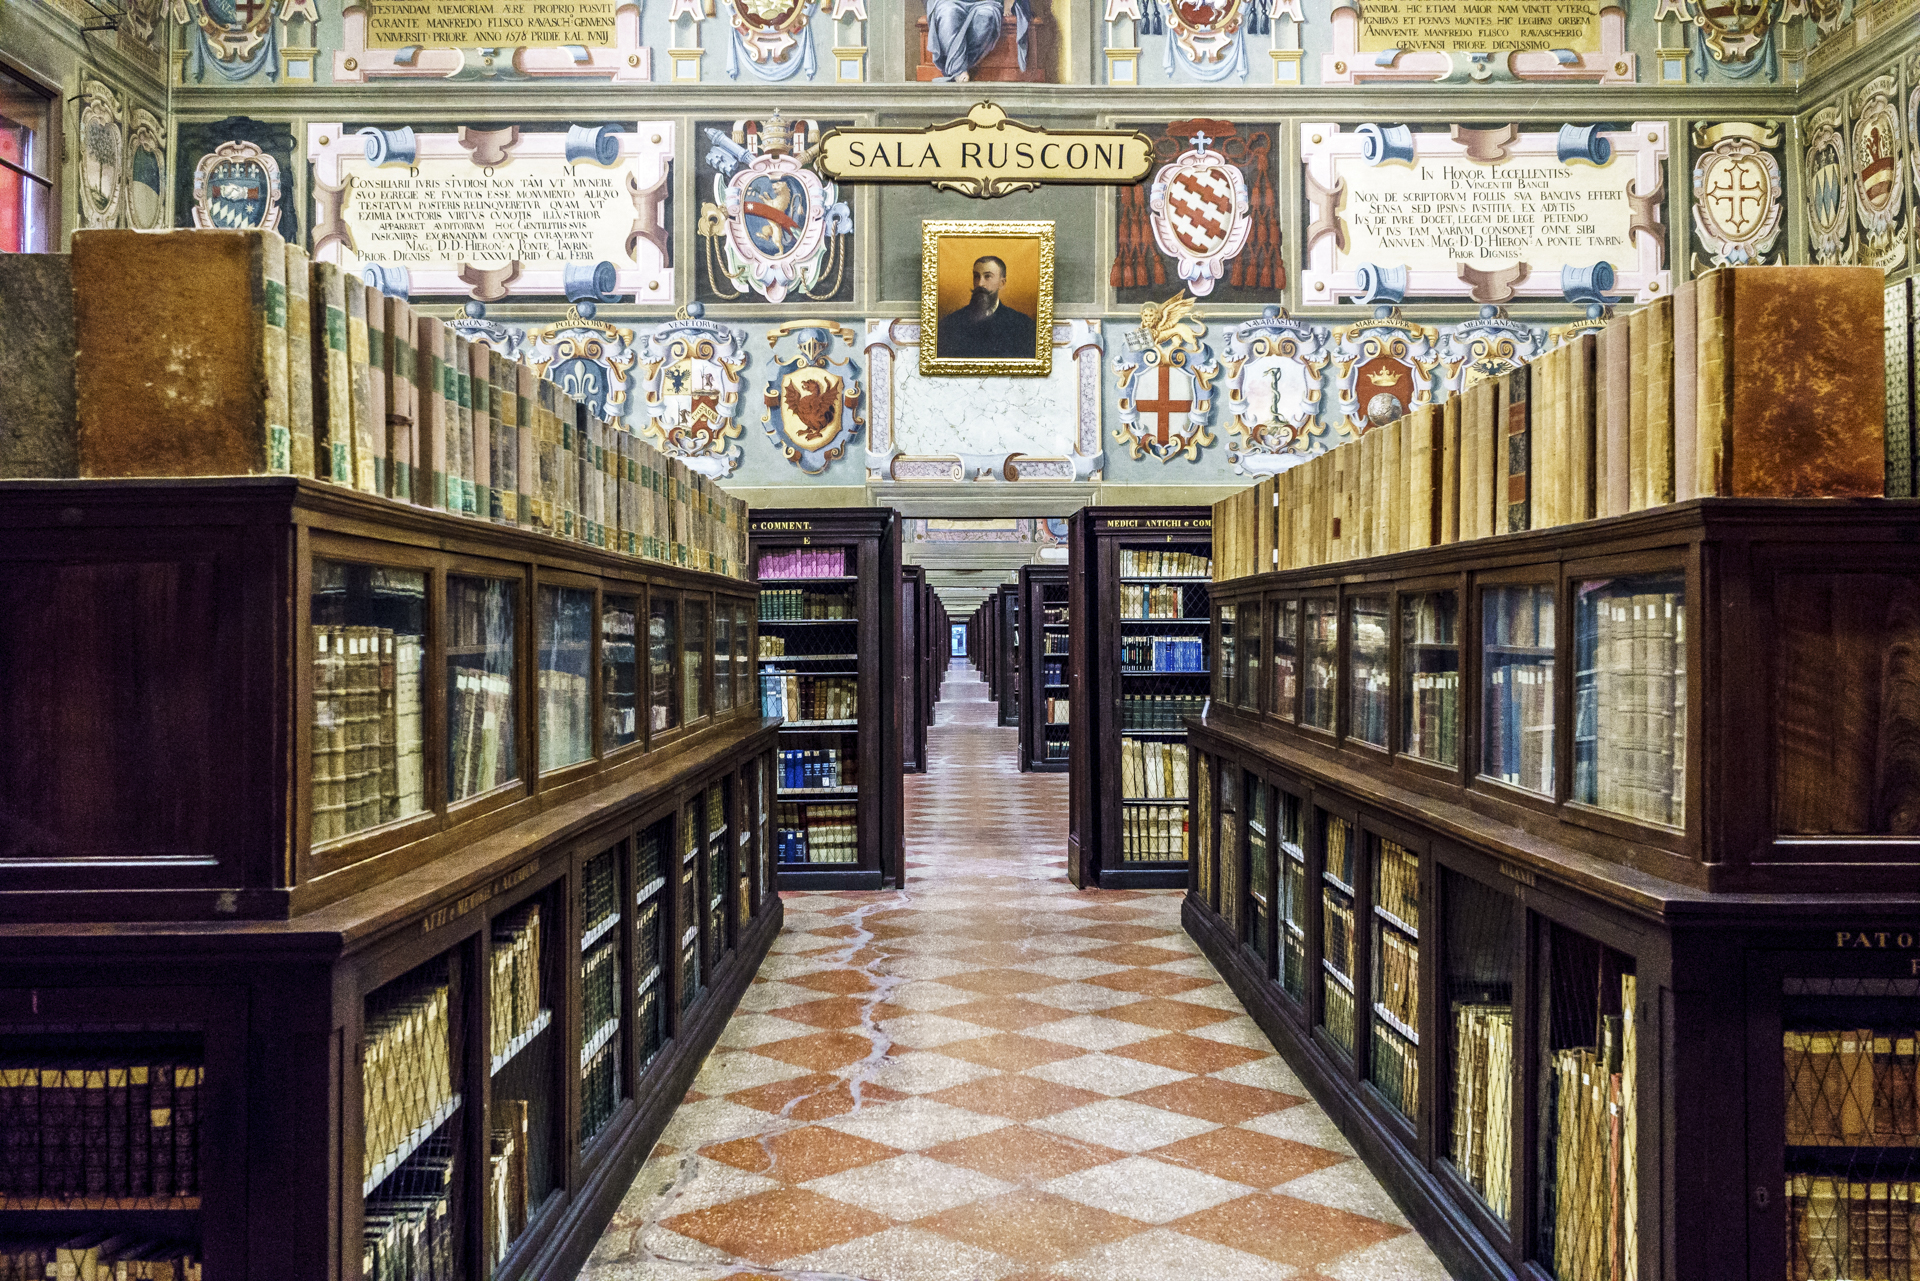 Biblioteca-dell-Archiginnasio-Buecher